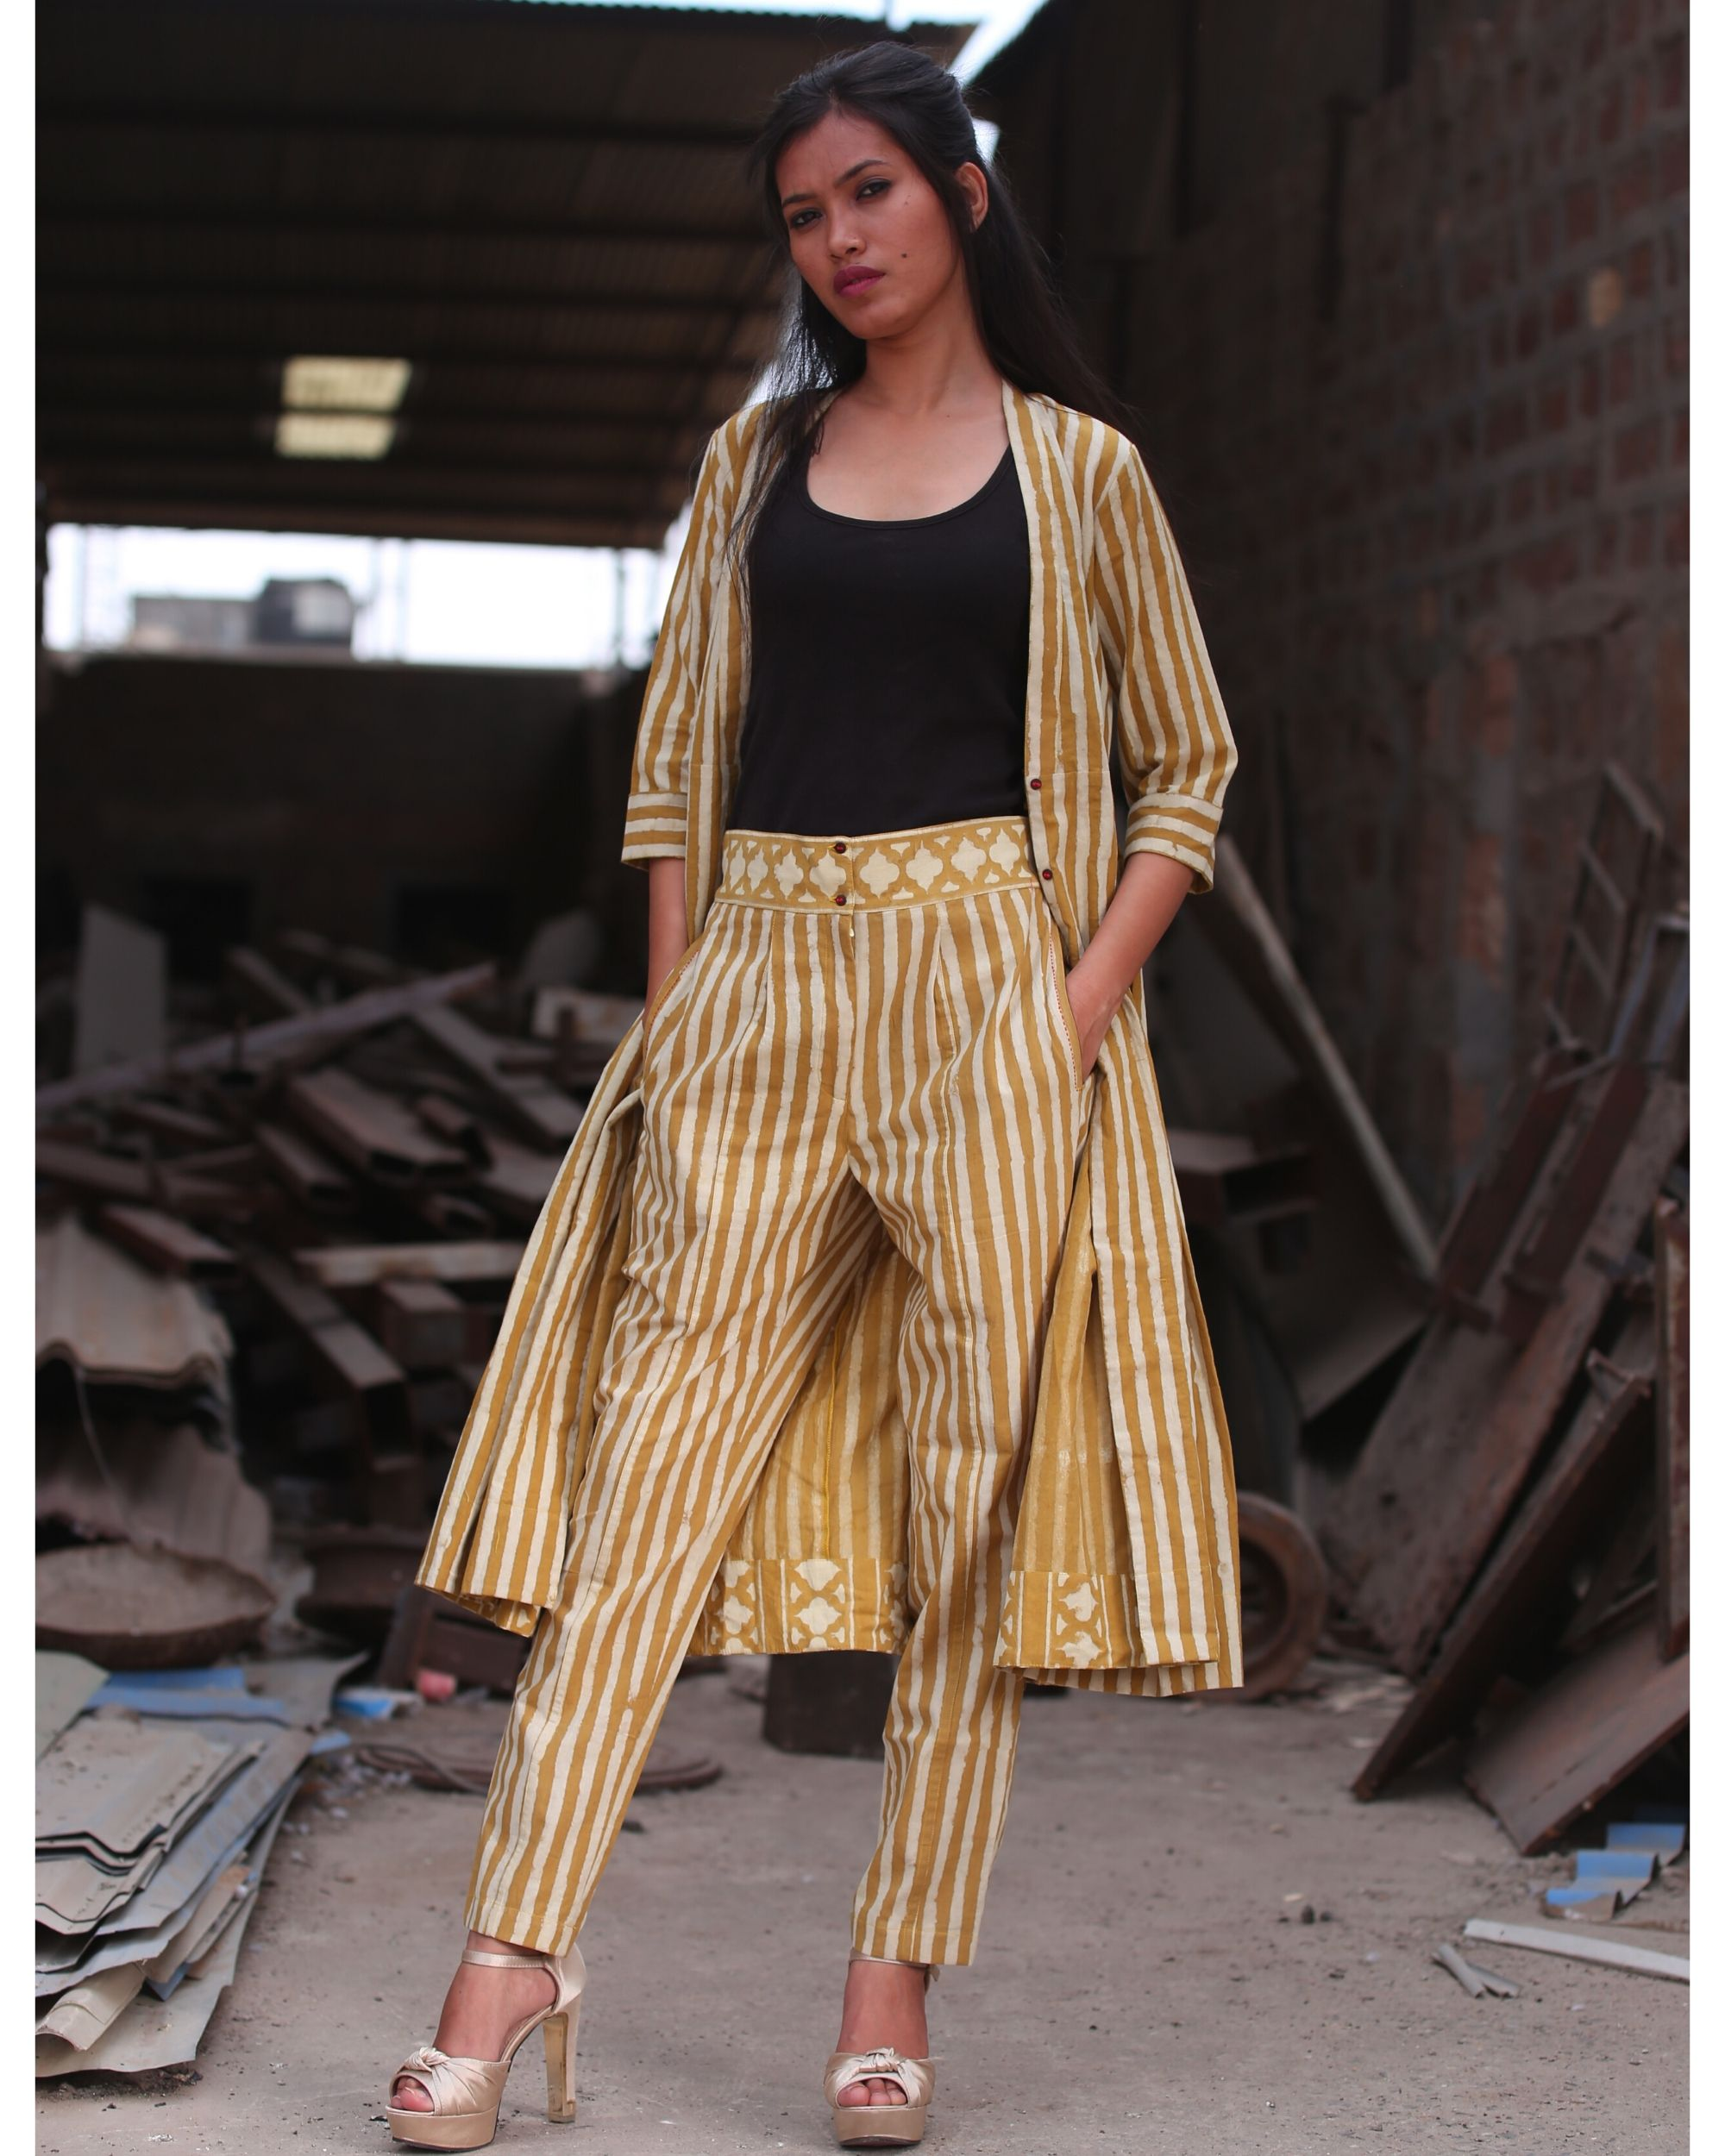 Mustard yellow striped buttoned pants